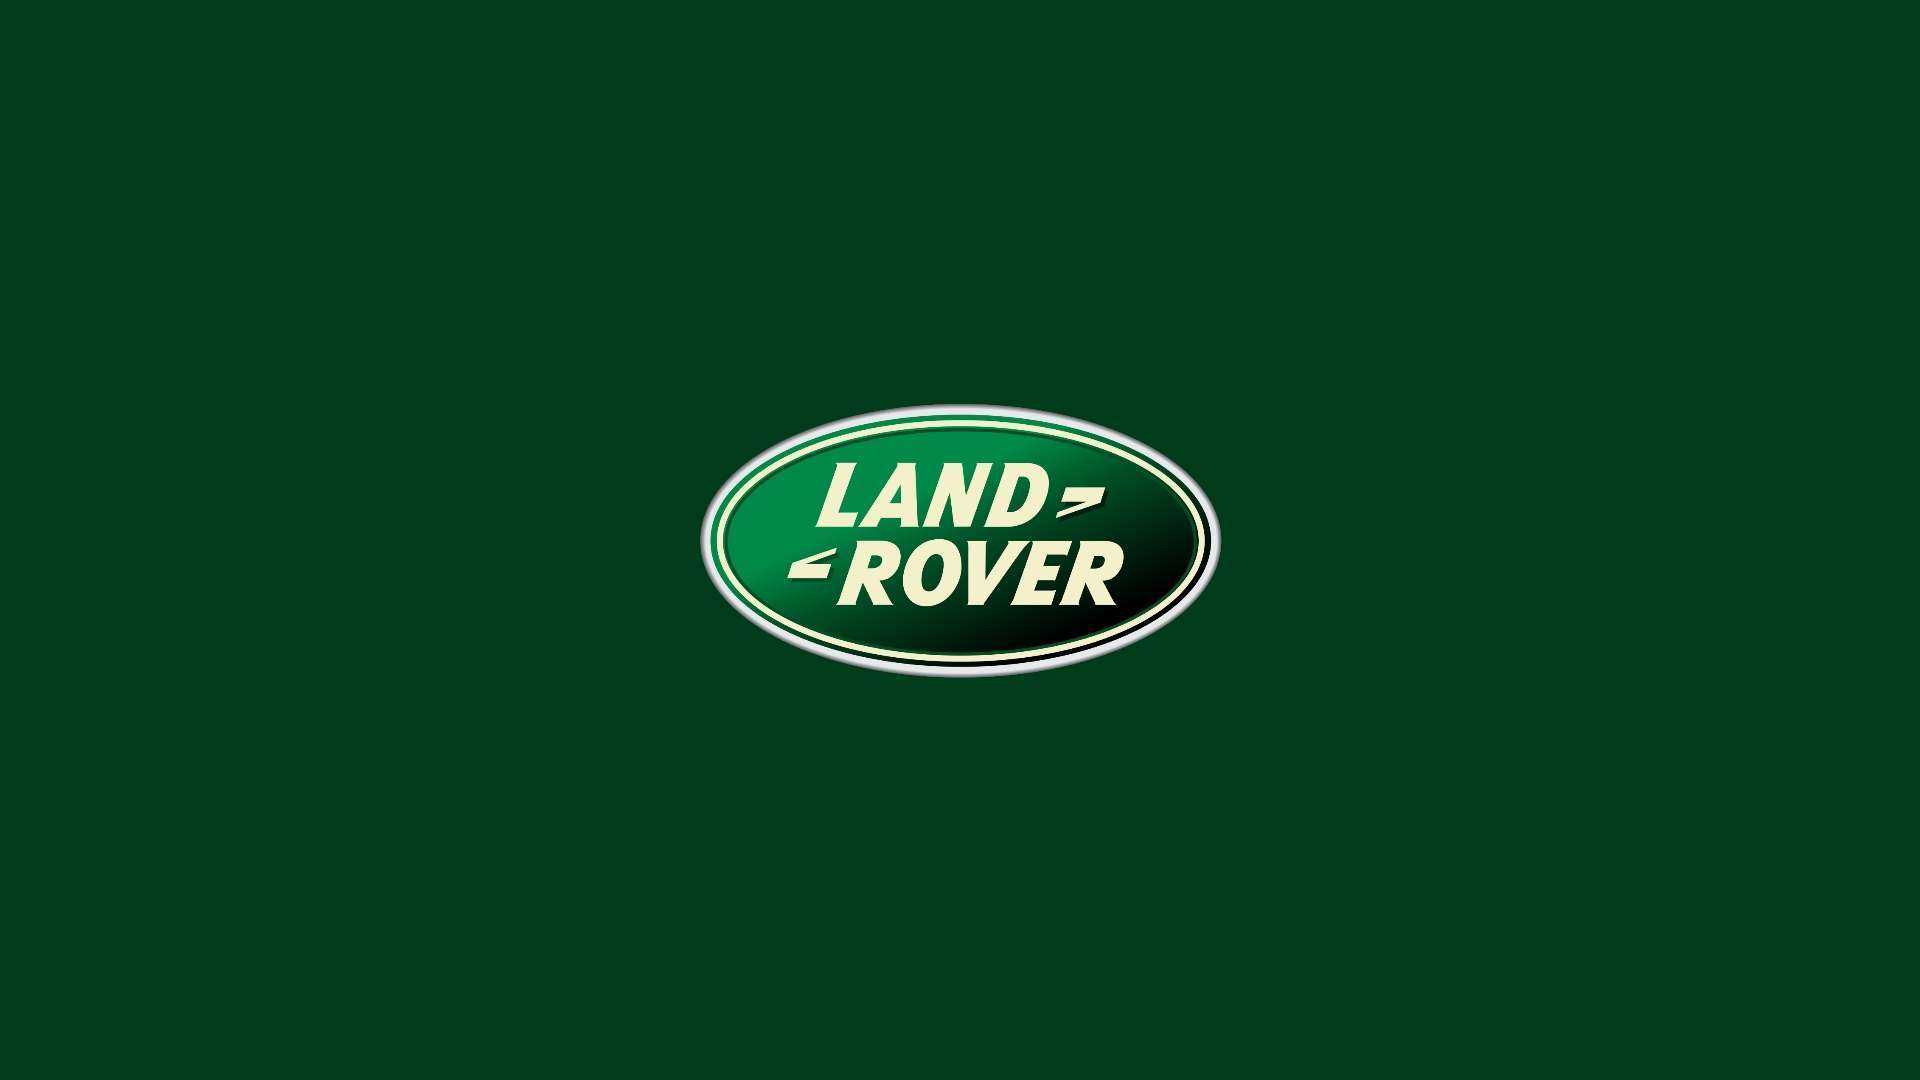 land rover logo wallpapers full hd pictures. Black Bedroom Furniture Sets. Home Design Ideas